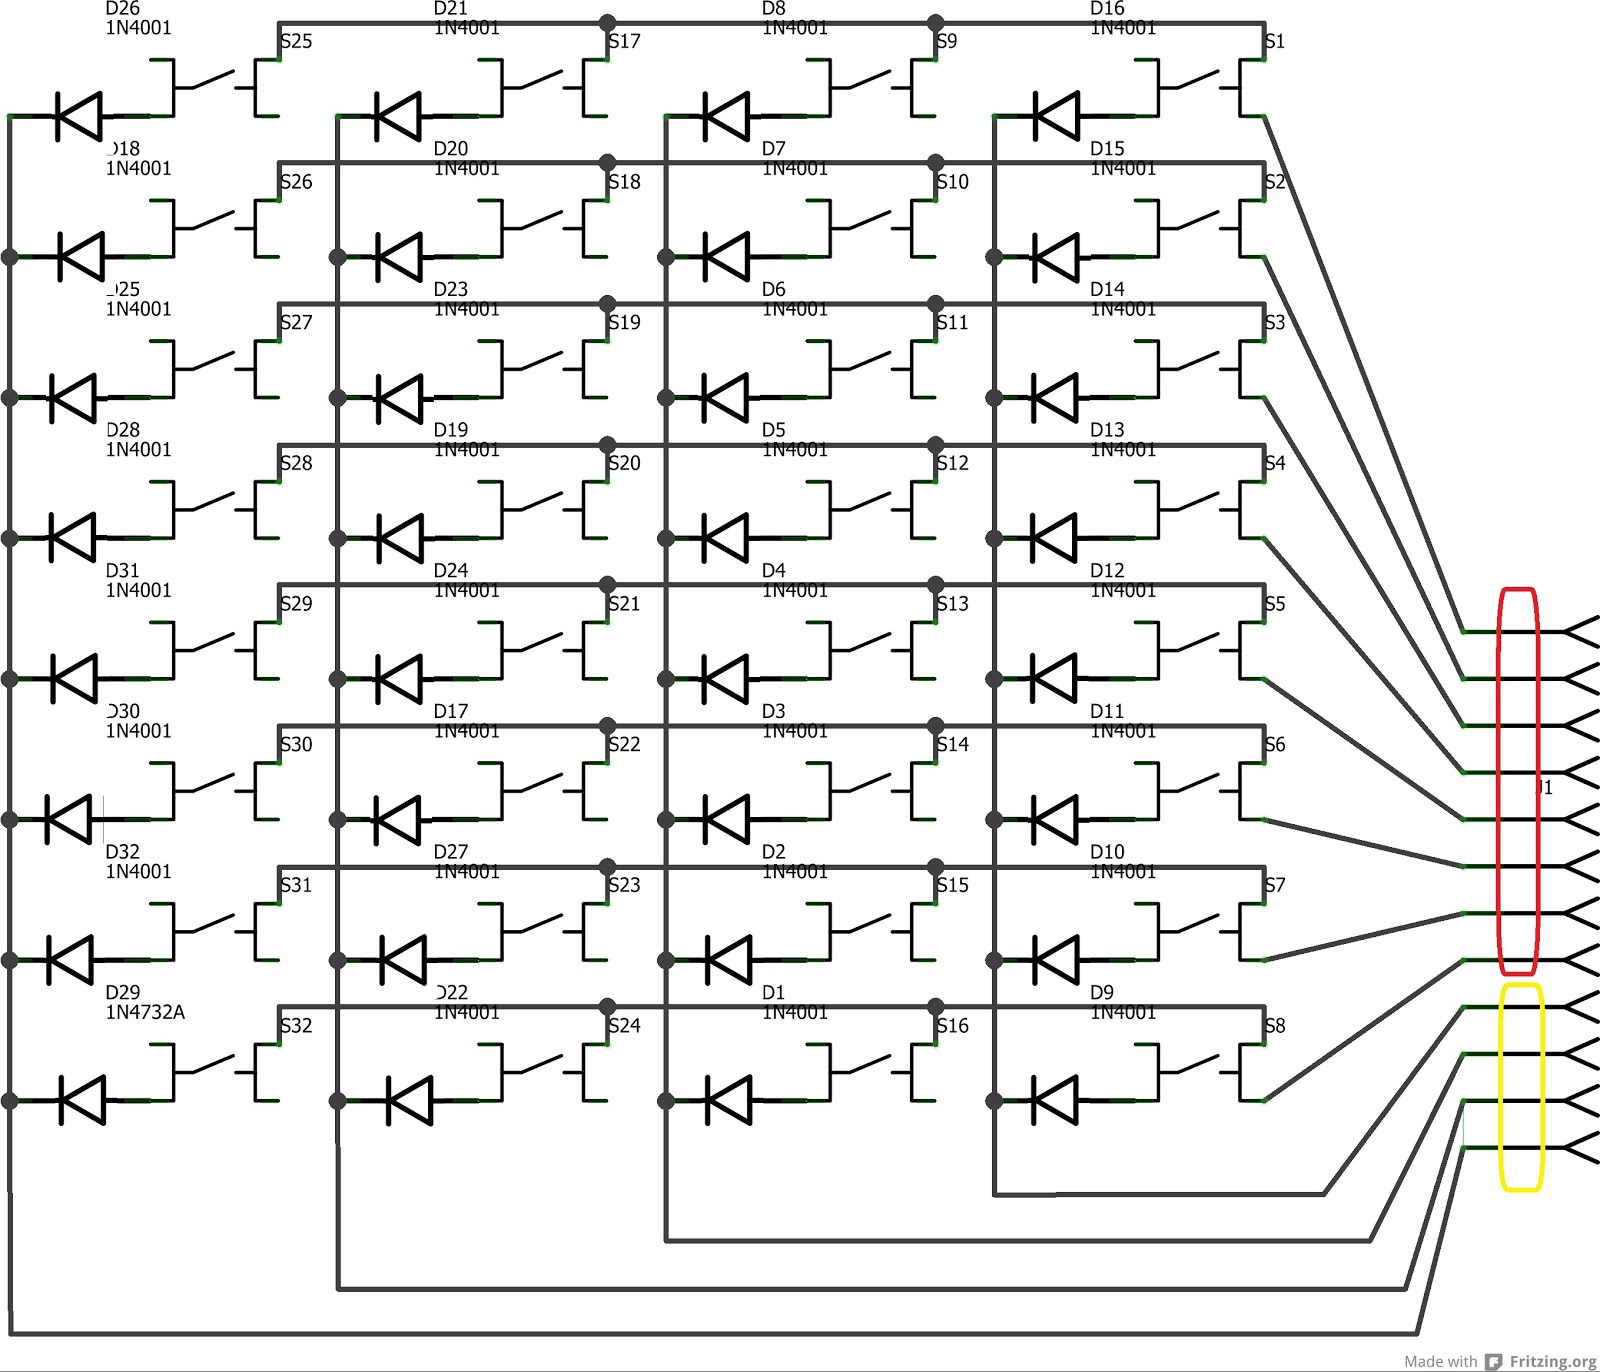 keys pcb schematic columns red and rows yellow  [ 1600 x 1372 Pixel ]